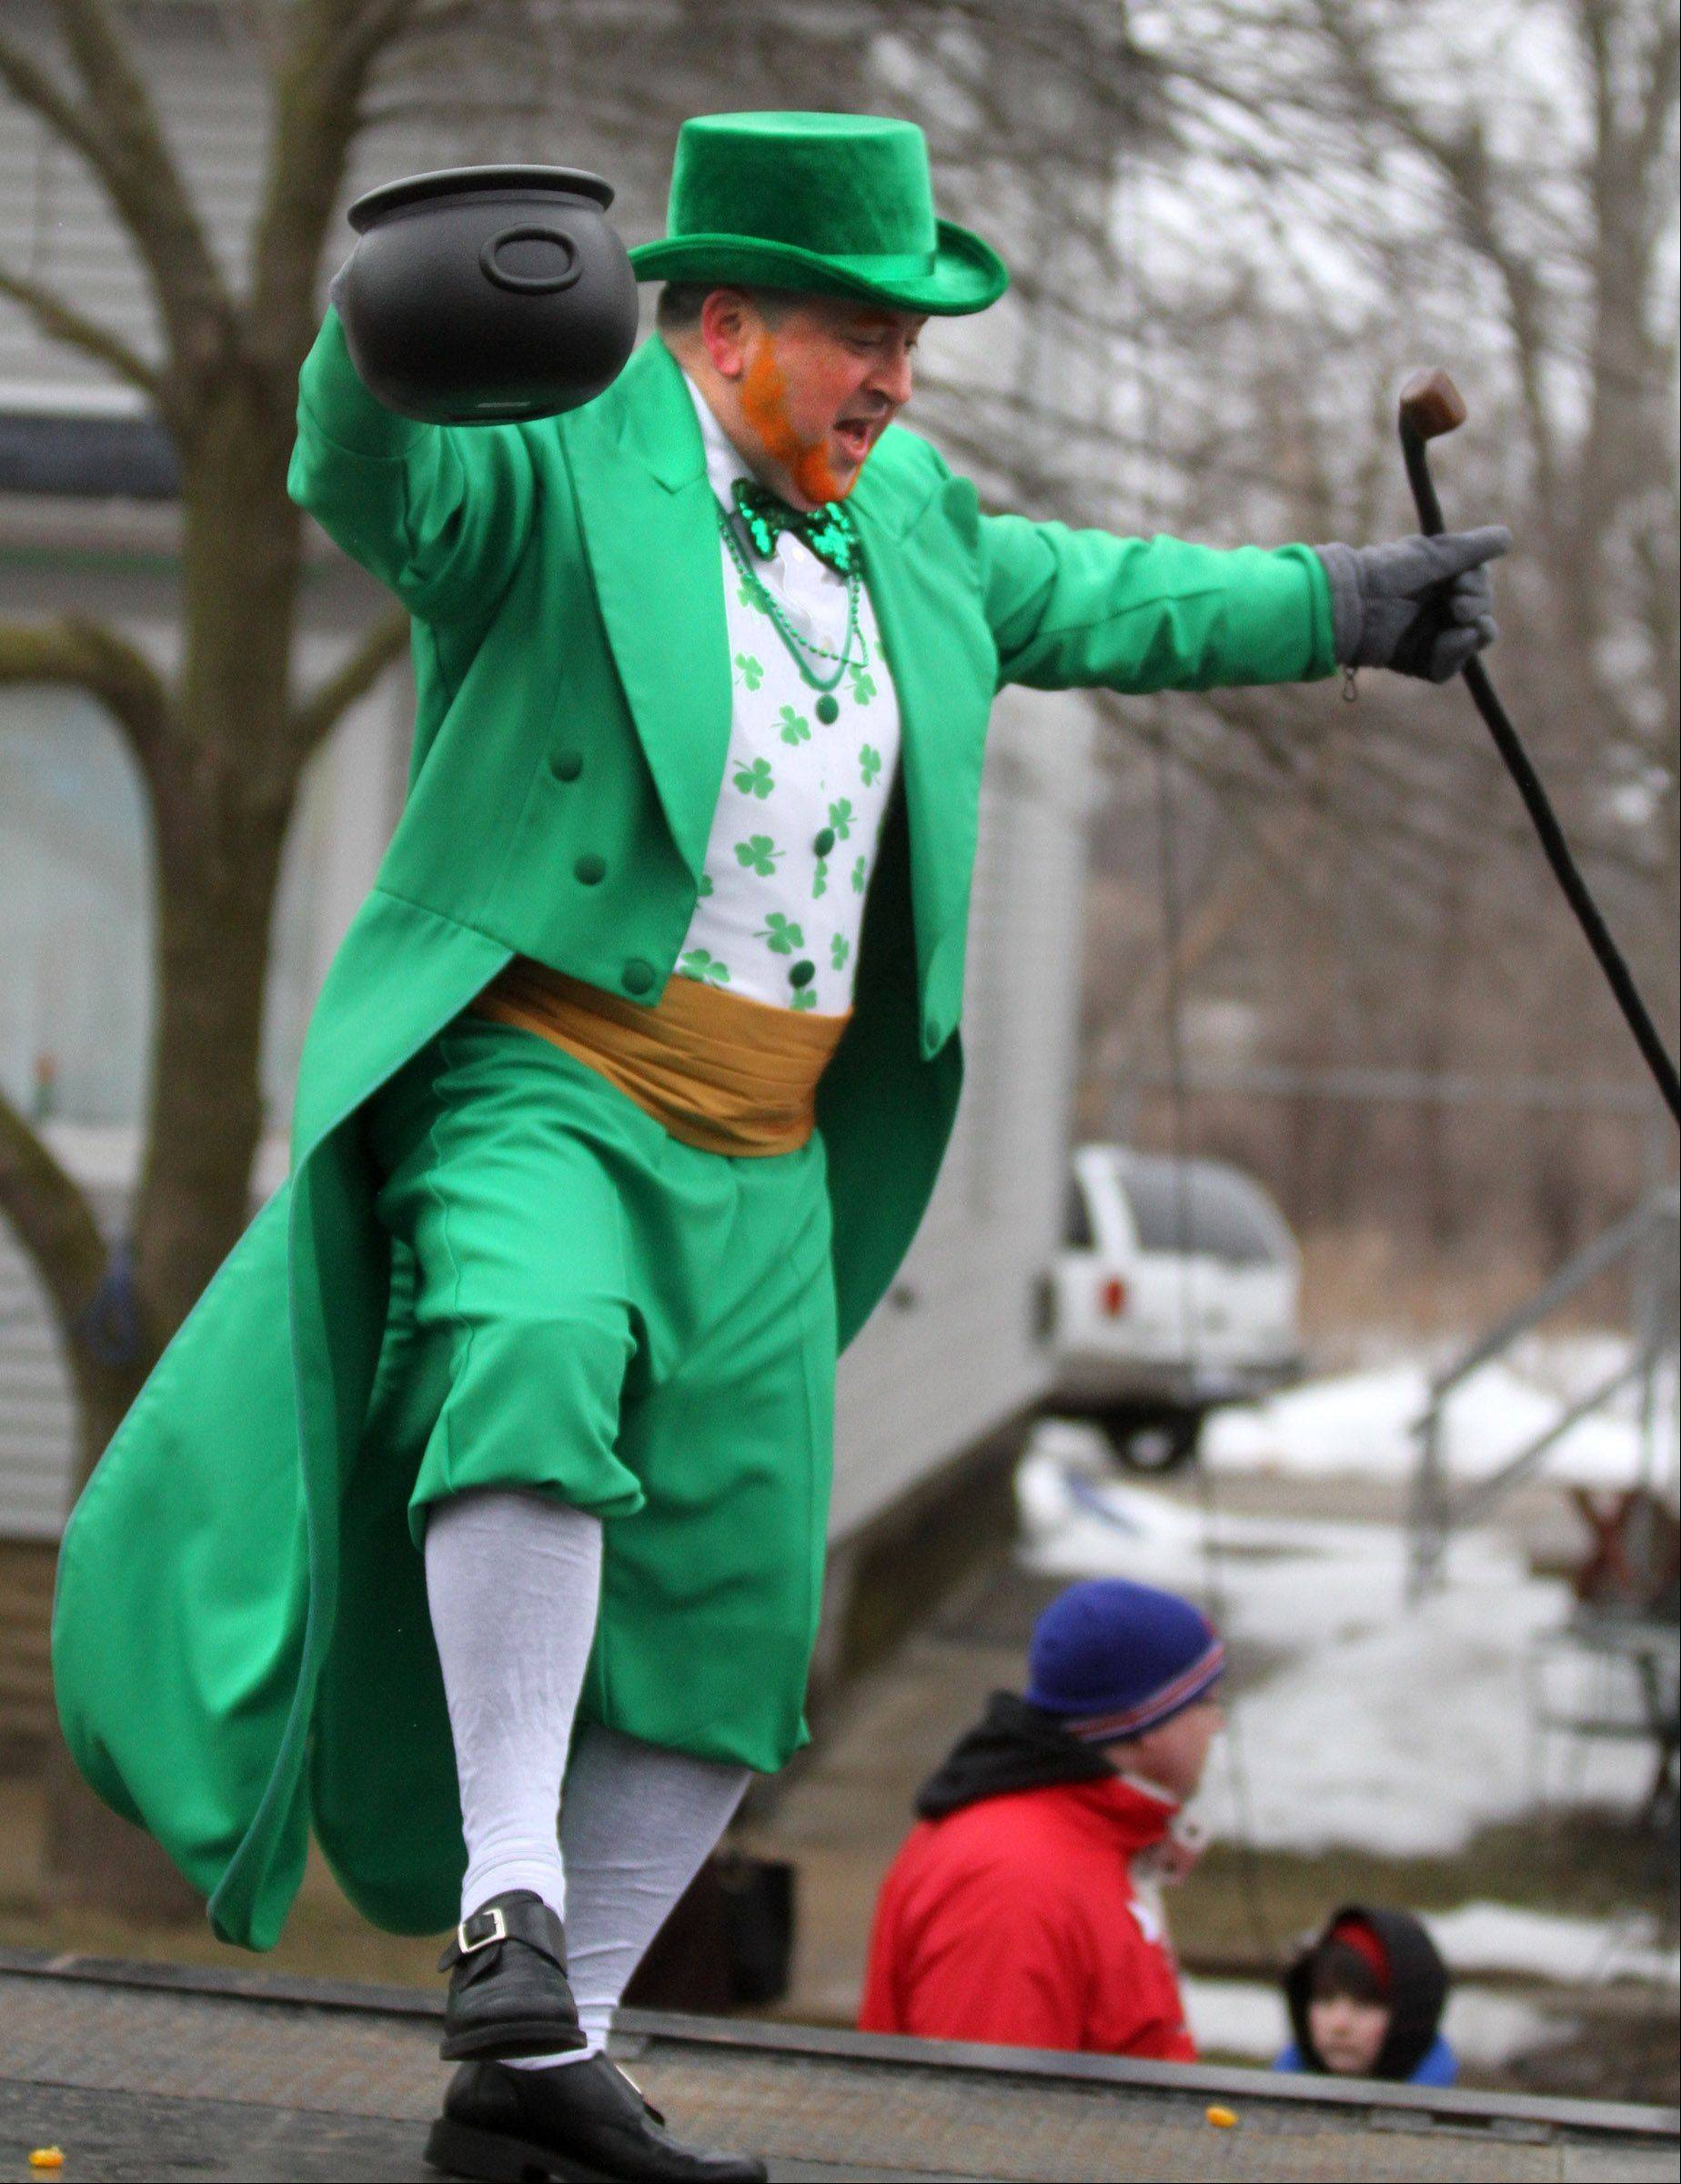 Jack Ruskin of Lake Villa dressed as a leprechaun to ride on the Fox Recovery and Towing flatbed float in the Lake Villa St. Patrick's Day parade on Saturday.